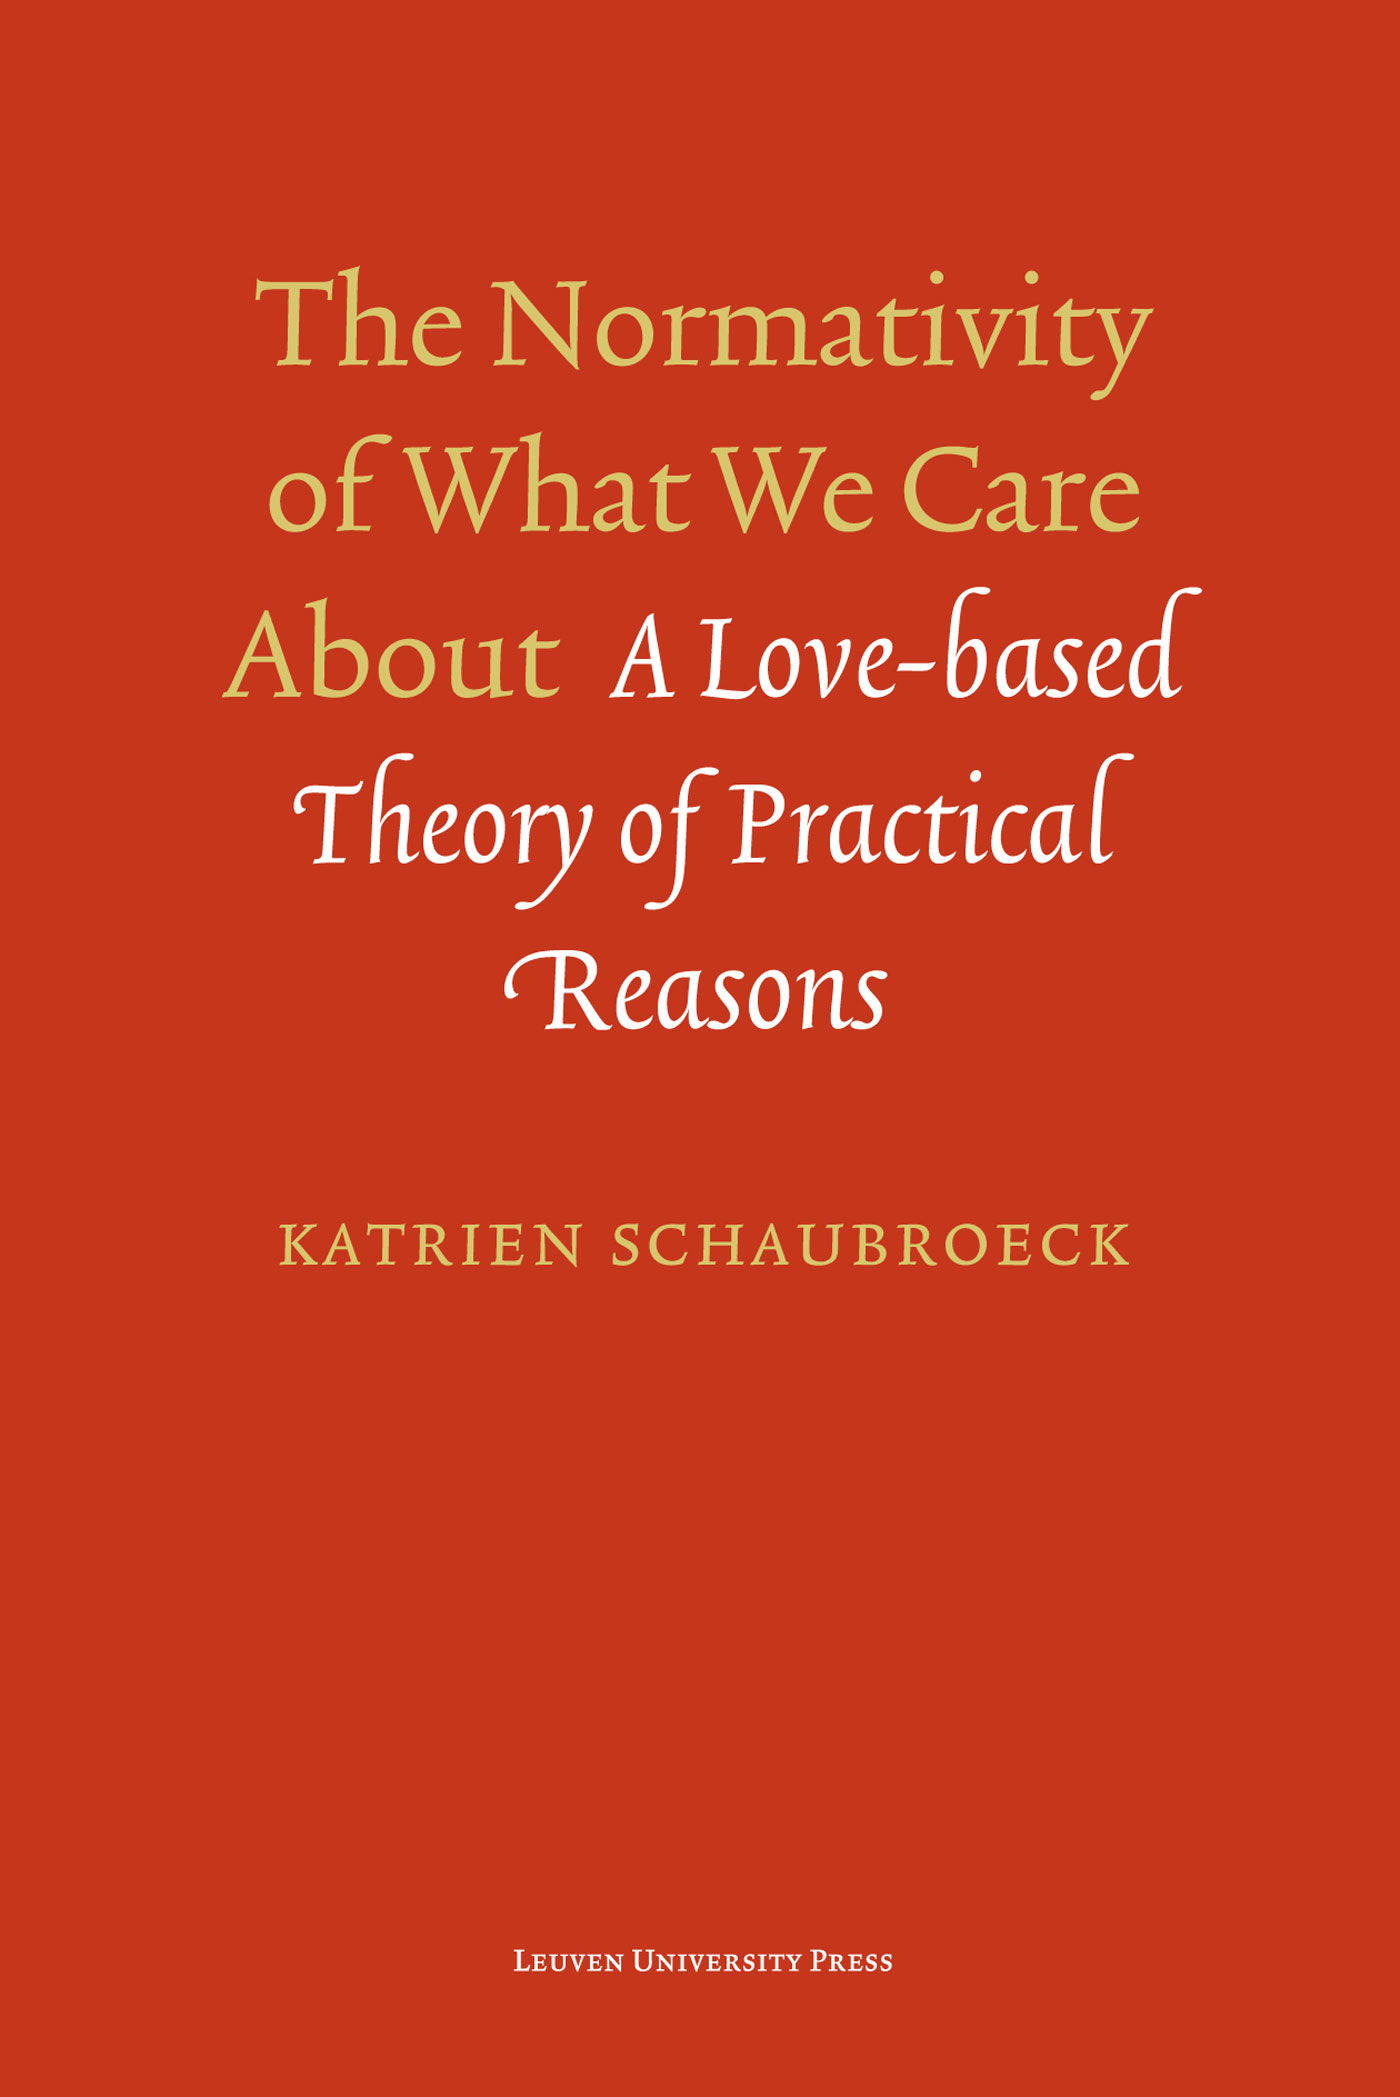 The normativity of what we care about